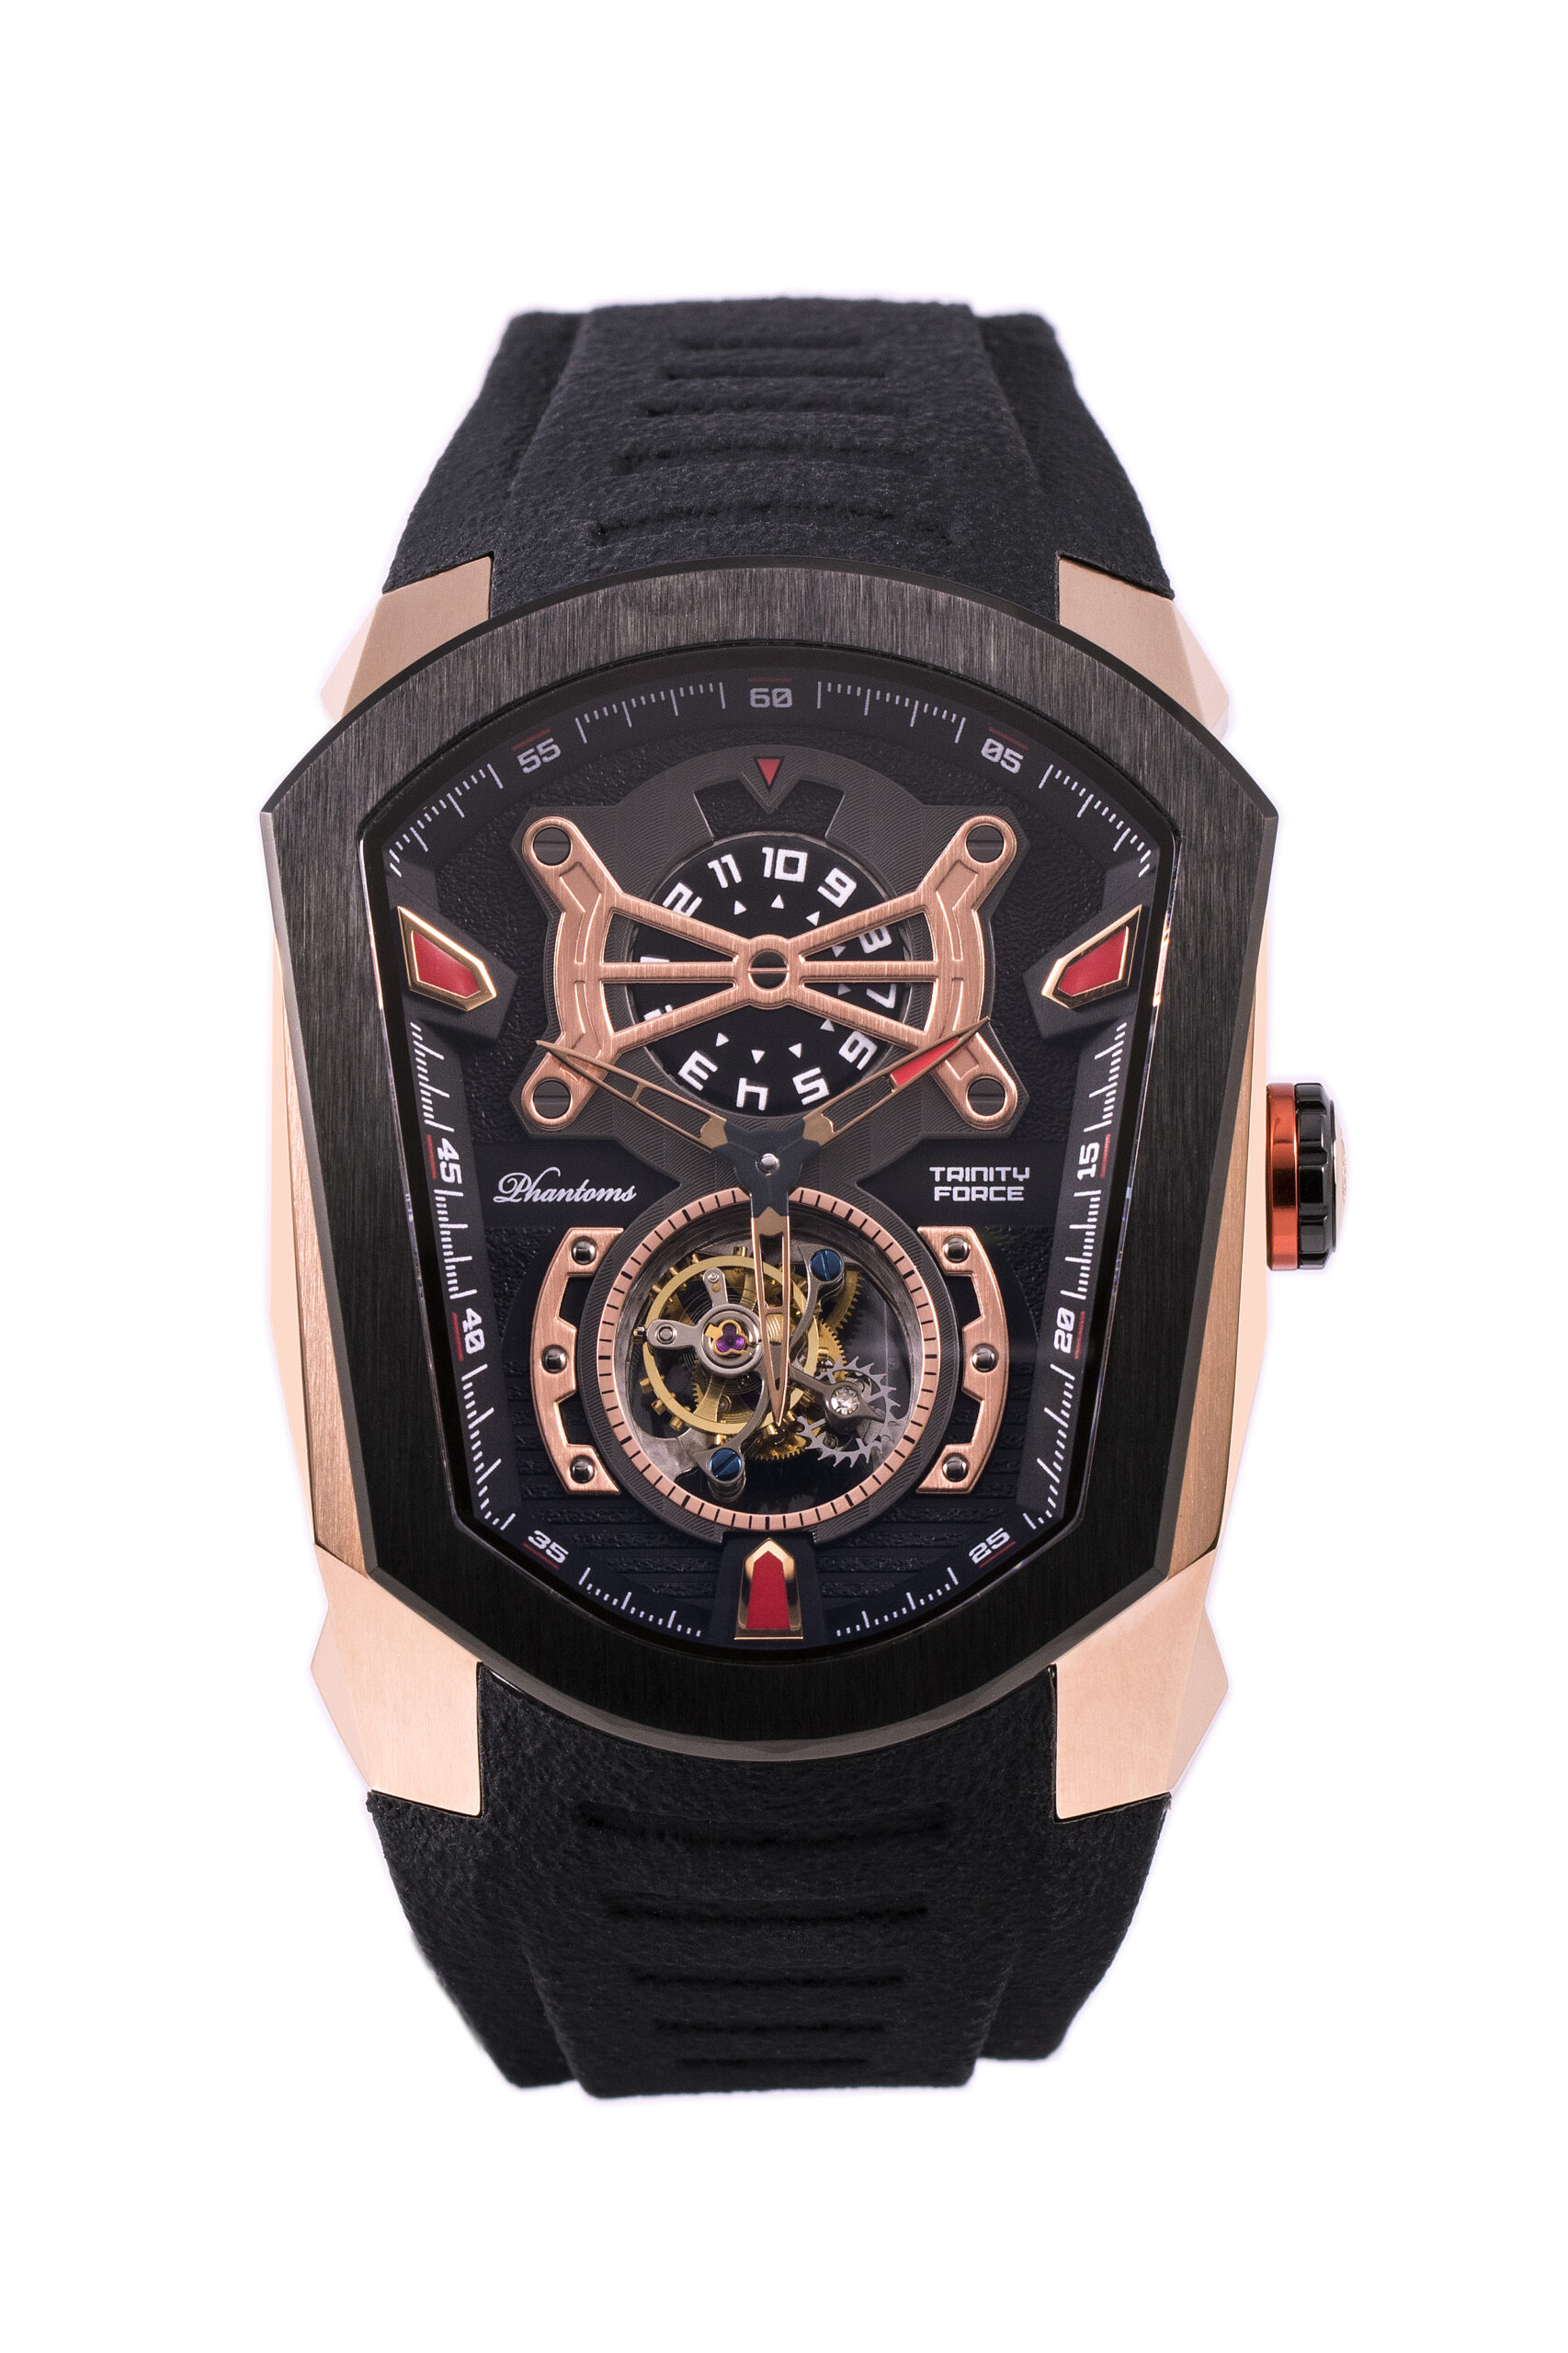 Phantoms Trinity Force Mechanical Flying Tourbillon